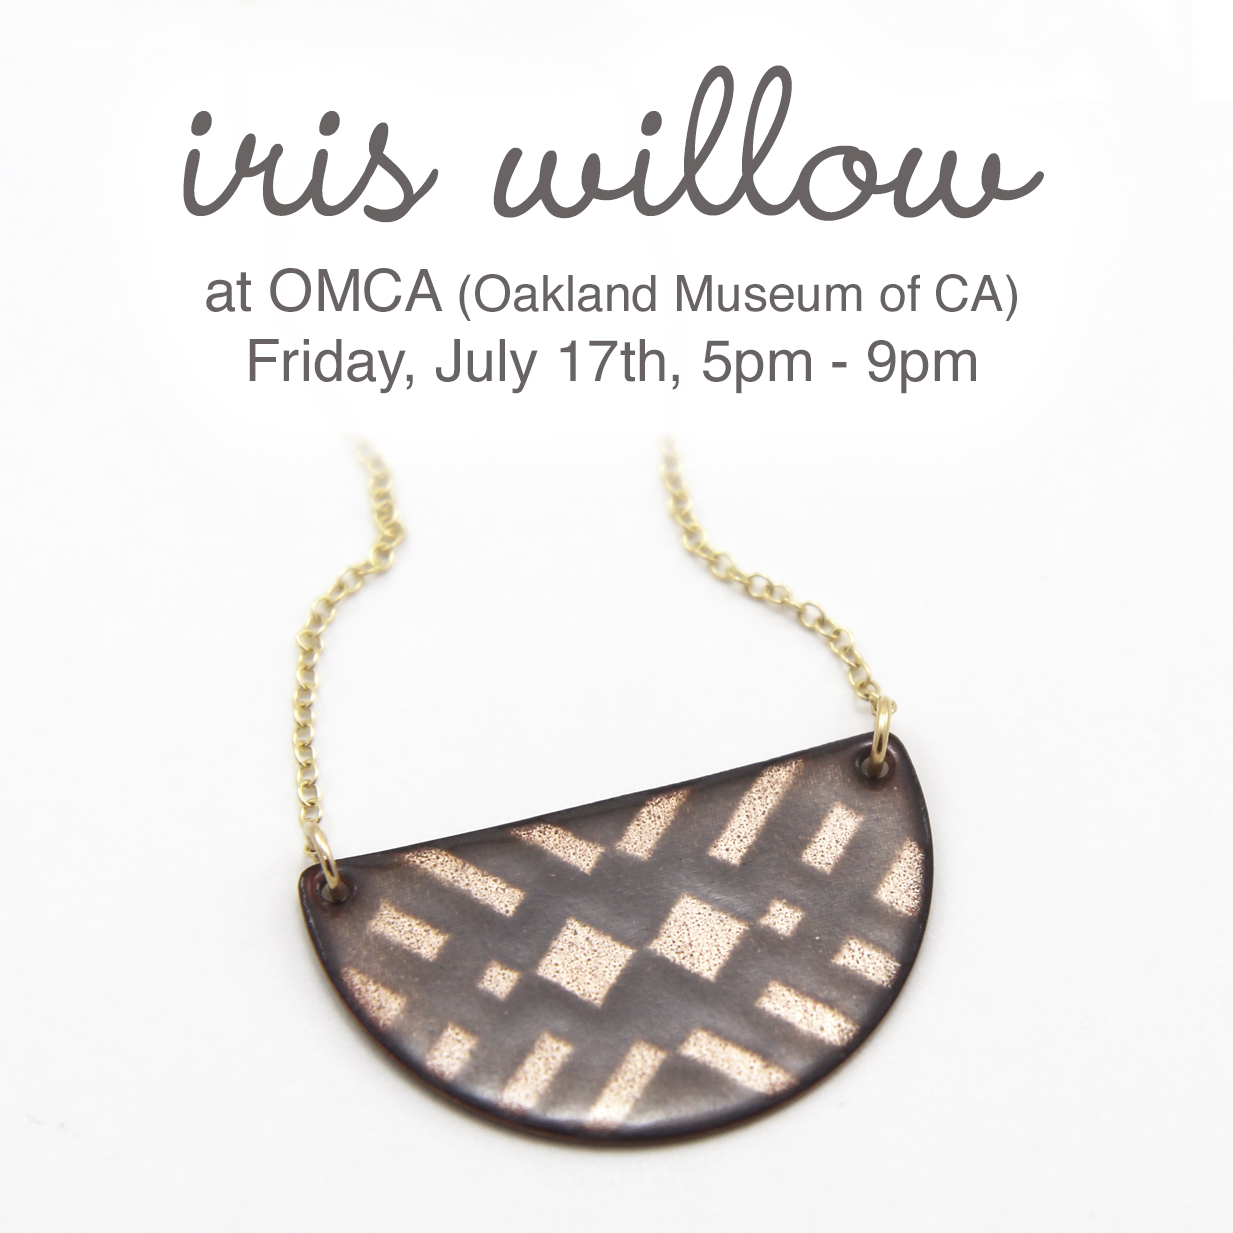 Join me tomorrow for at OMCA in Oakland. There'll be food trucks, local art, live music and half price admission. I'll have a big selection of my handmade enamel jewelry available, including this screen-printed enamel geo necklace.